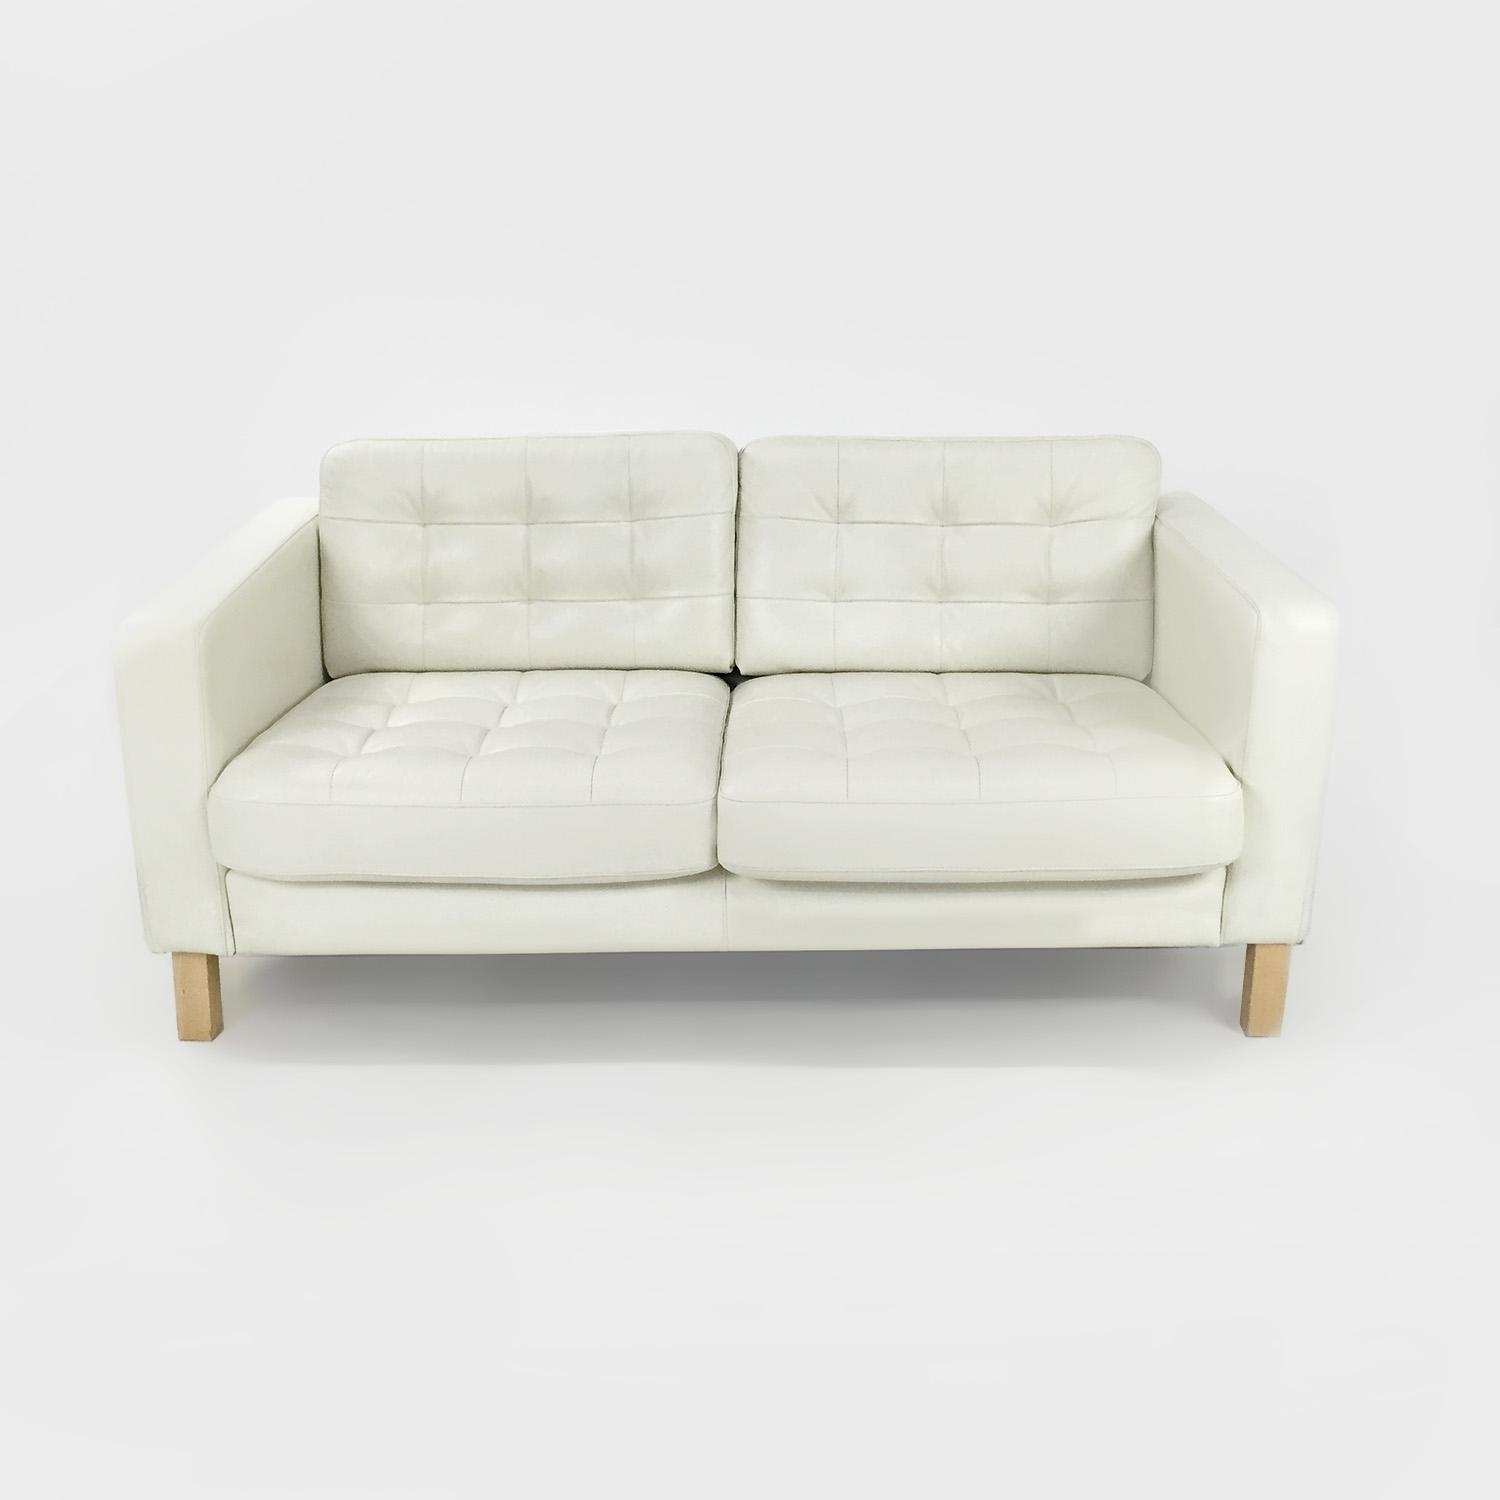 50% Off - Ikea White Leather Couch / Sofas inside Off White Leather Sofa And Loveseat